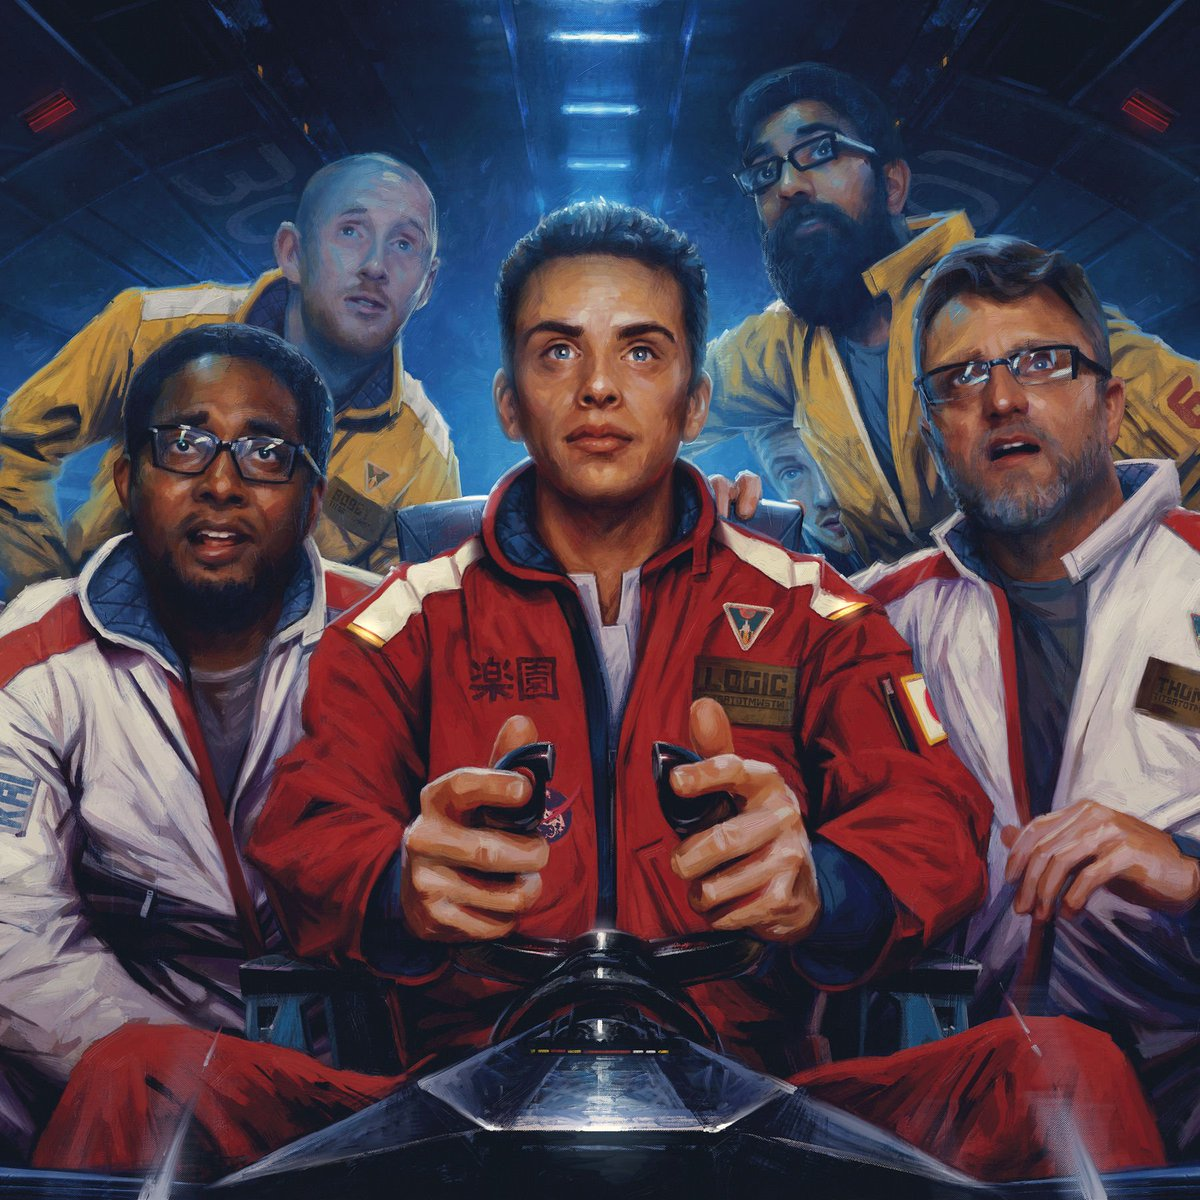 JUST ANNOUNCED  Logic is coming to Stubb's Austin 3/25!   Tix on sale Friday at 10AM! >> https://t.co/Iif8HjuVwm https://t.co/Rjs6Cn6VOw